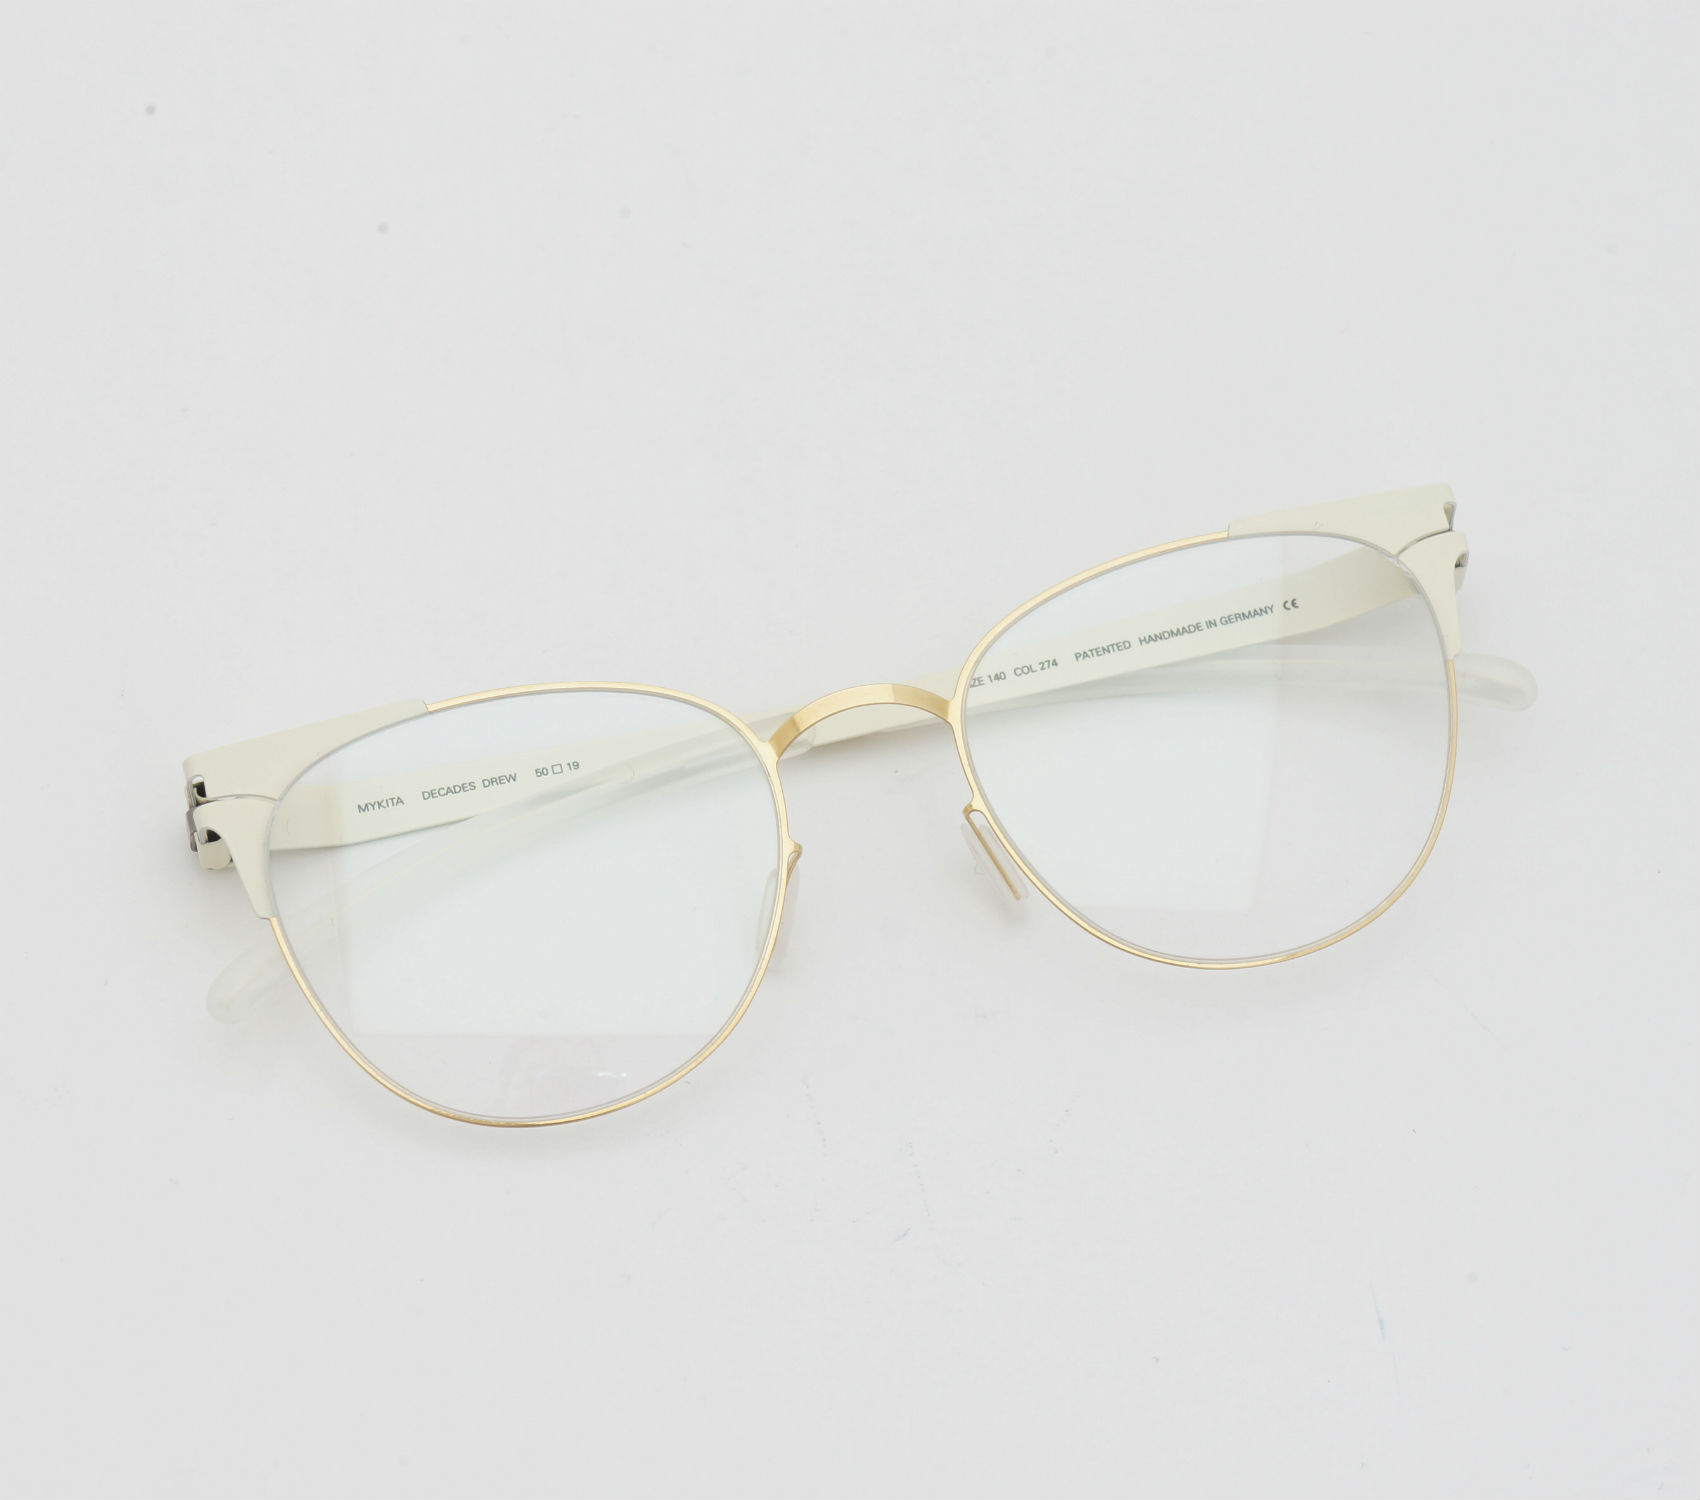 MYKITA DECADES DREW